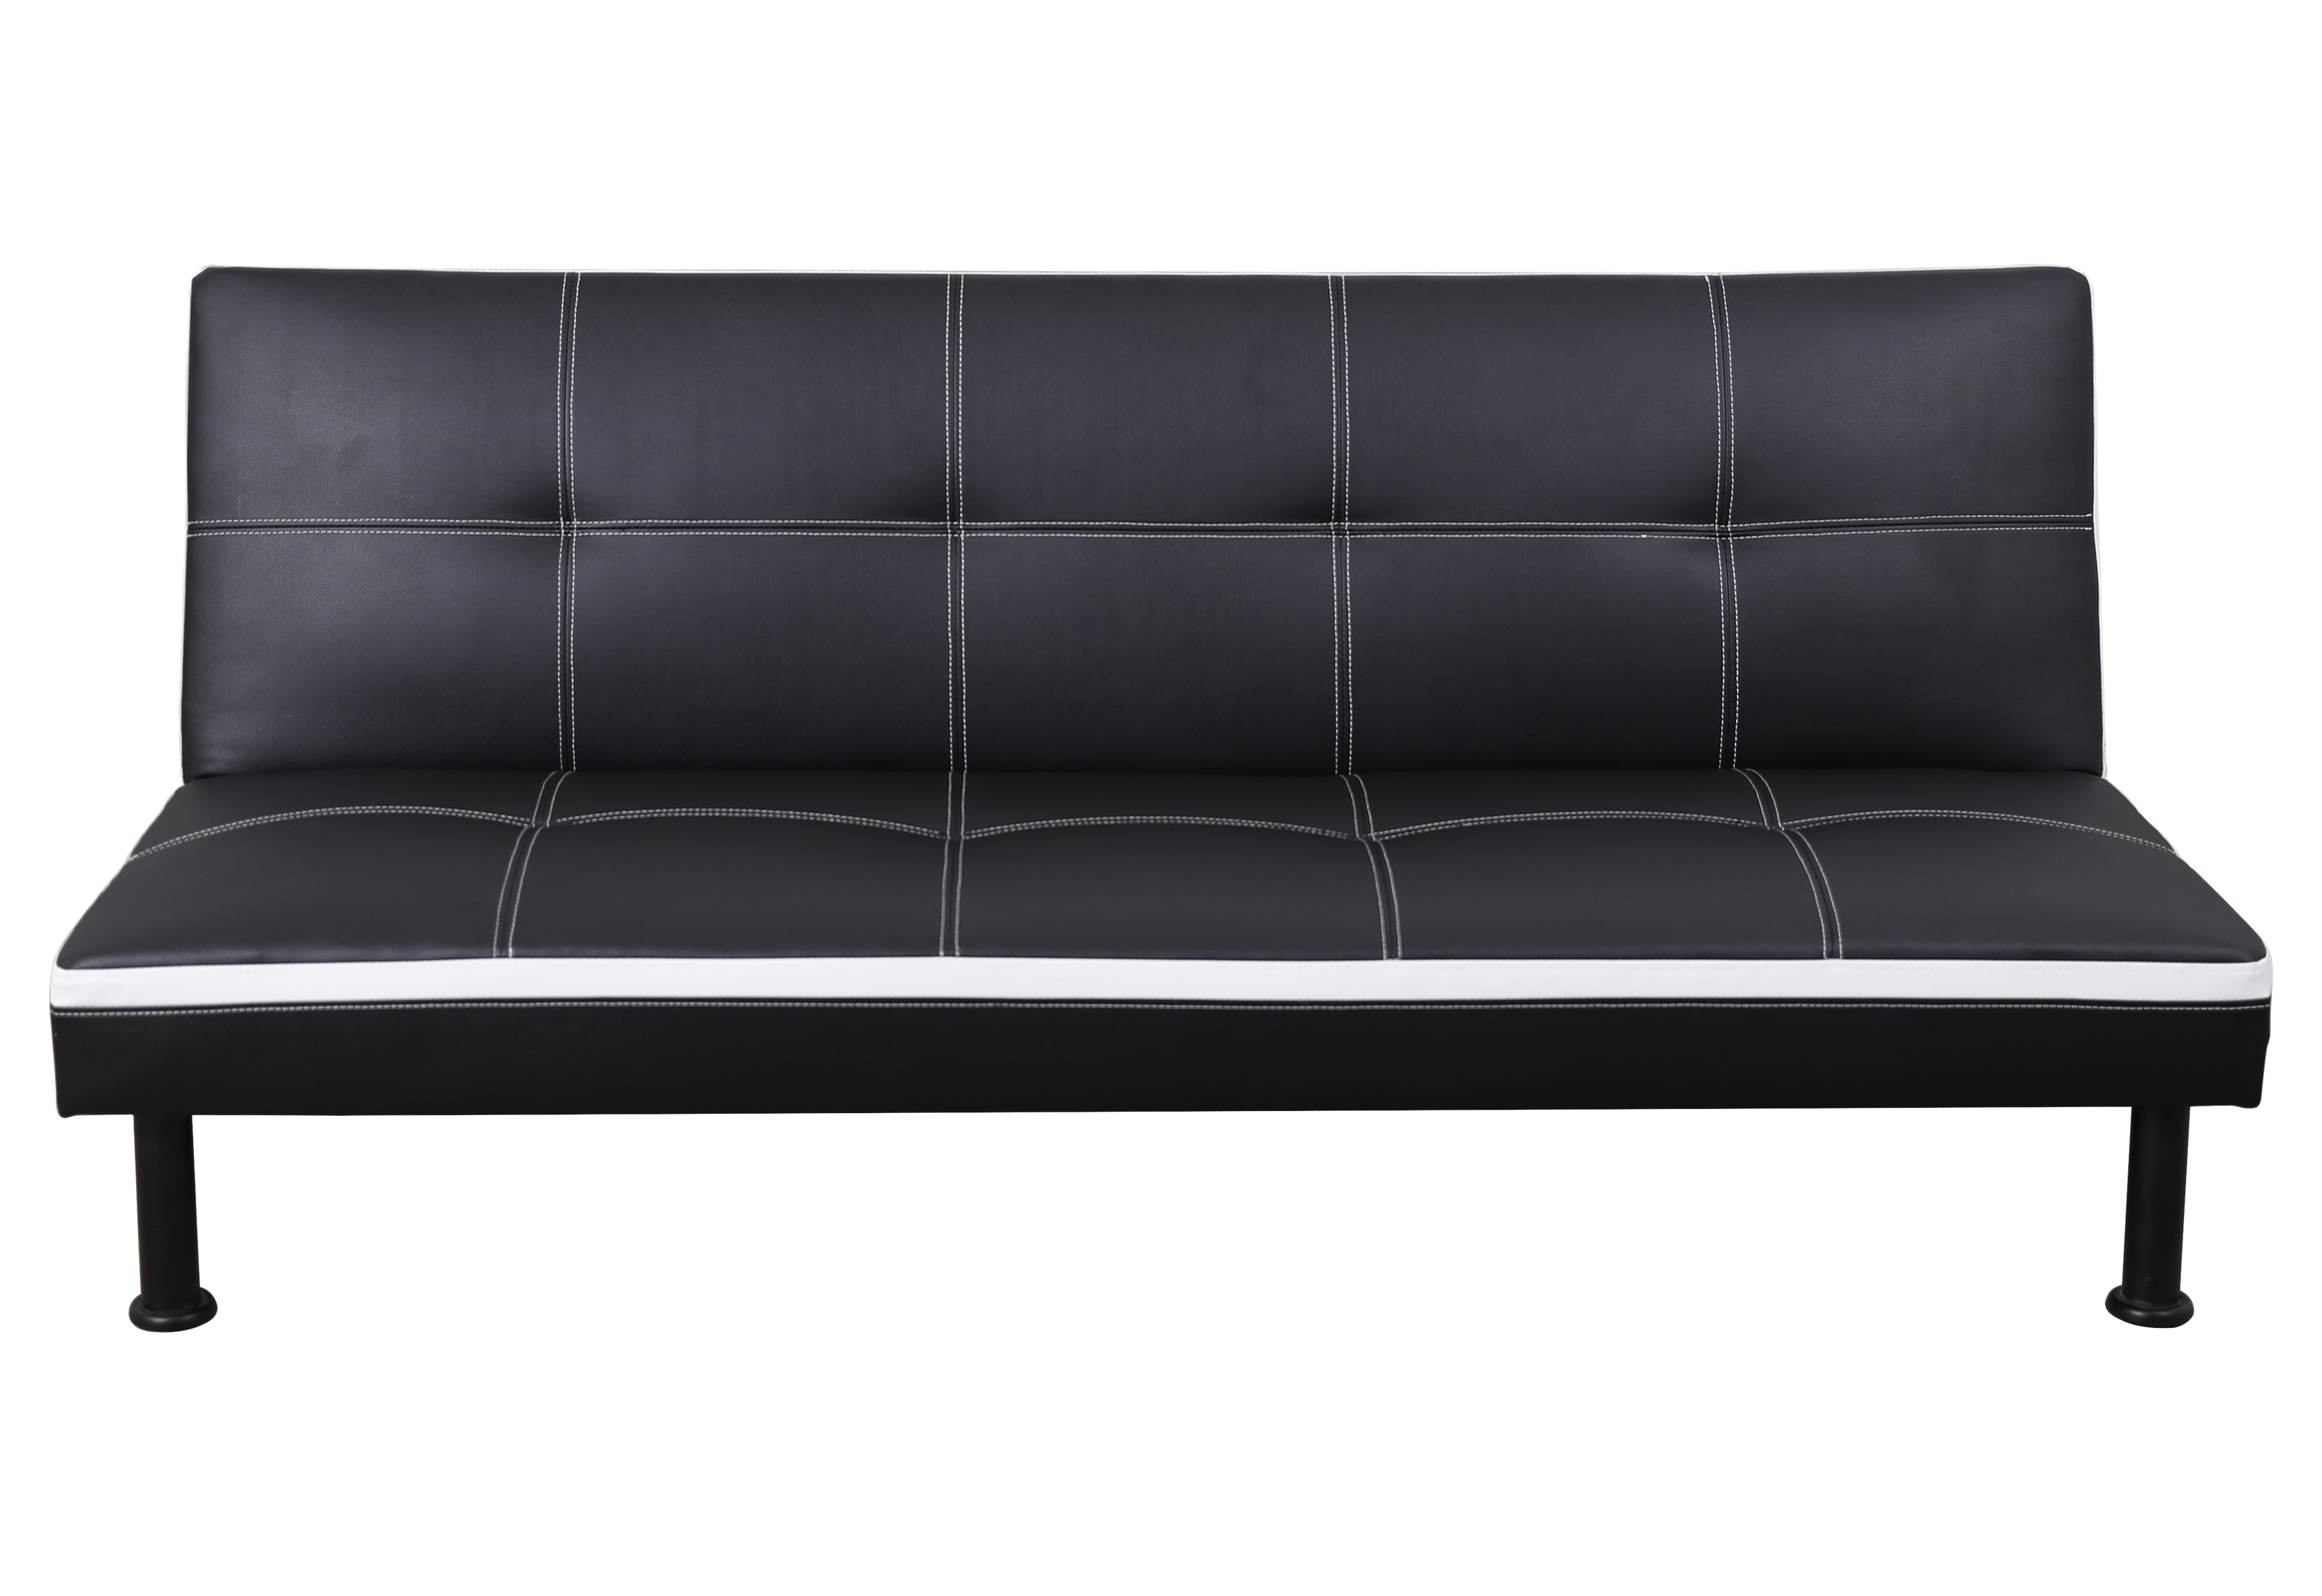 AYCP Furniture Convertible Sofa Futon Couch Bed, Faux Leather ...